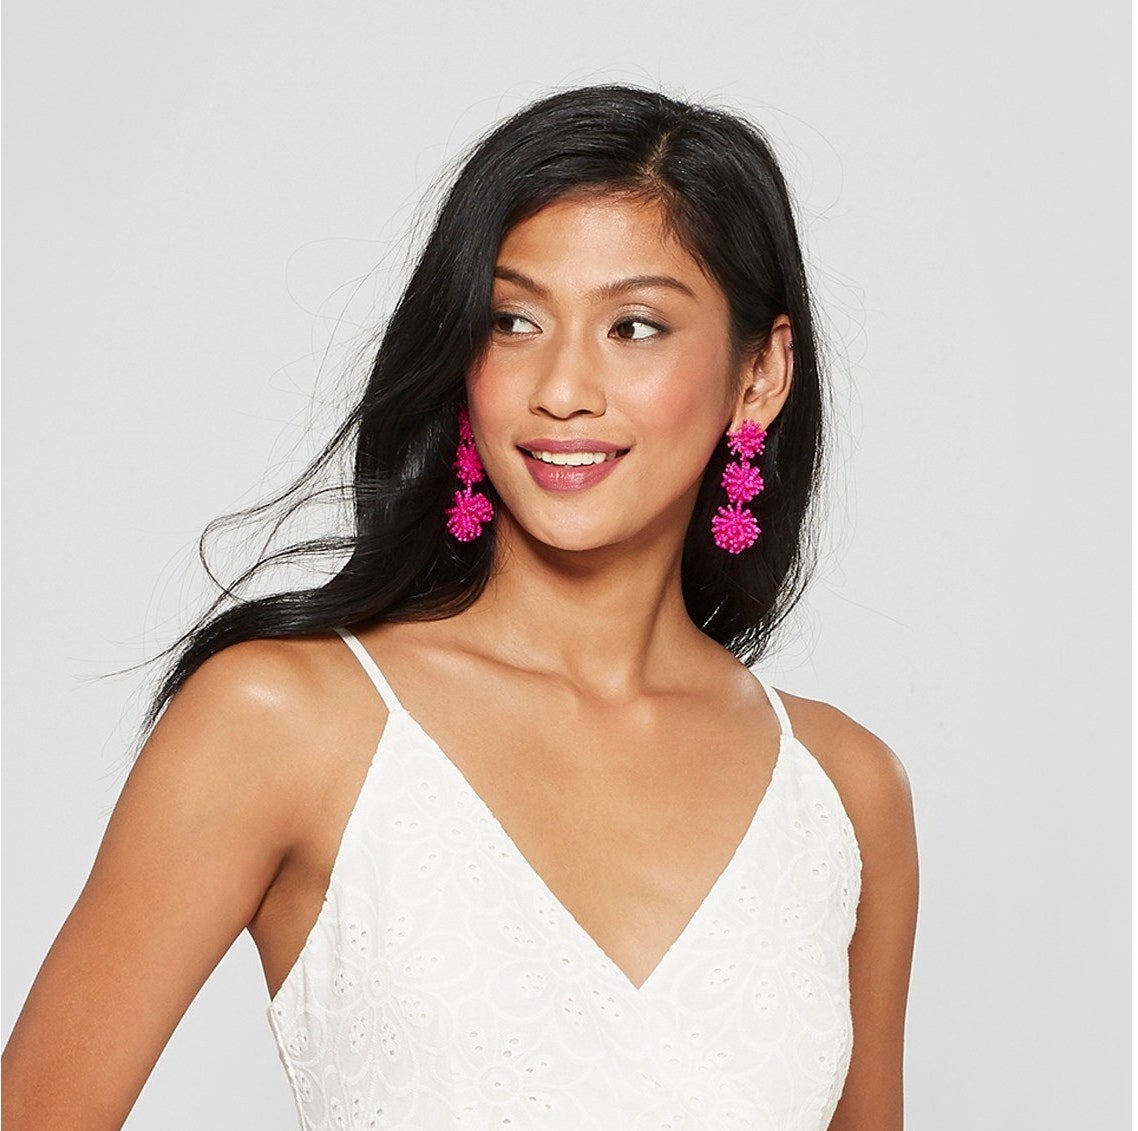 """Promising review: """"I love these earrings! I have them in several colors. They are super stylish and lightweight!"""" —smuashleyGet them from Target for $12.99 (available in five colors)."""